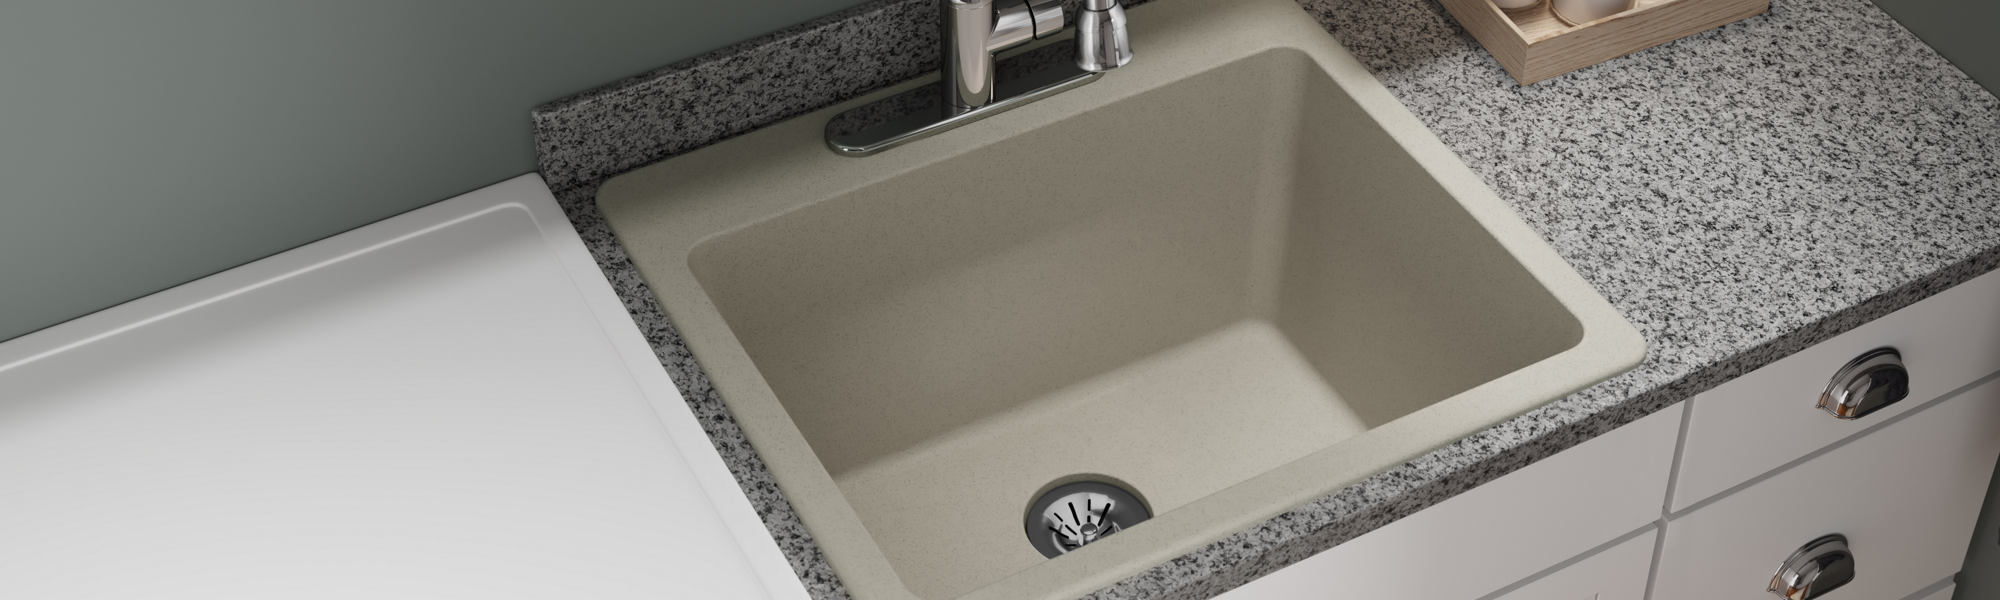 Elkay Quartz Classic 25in x 22in x 11-13/16in Drop-in Laundry Sink with Perfect Drain Putty